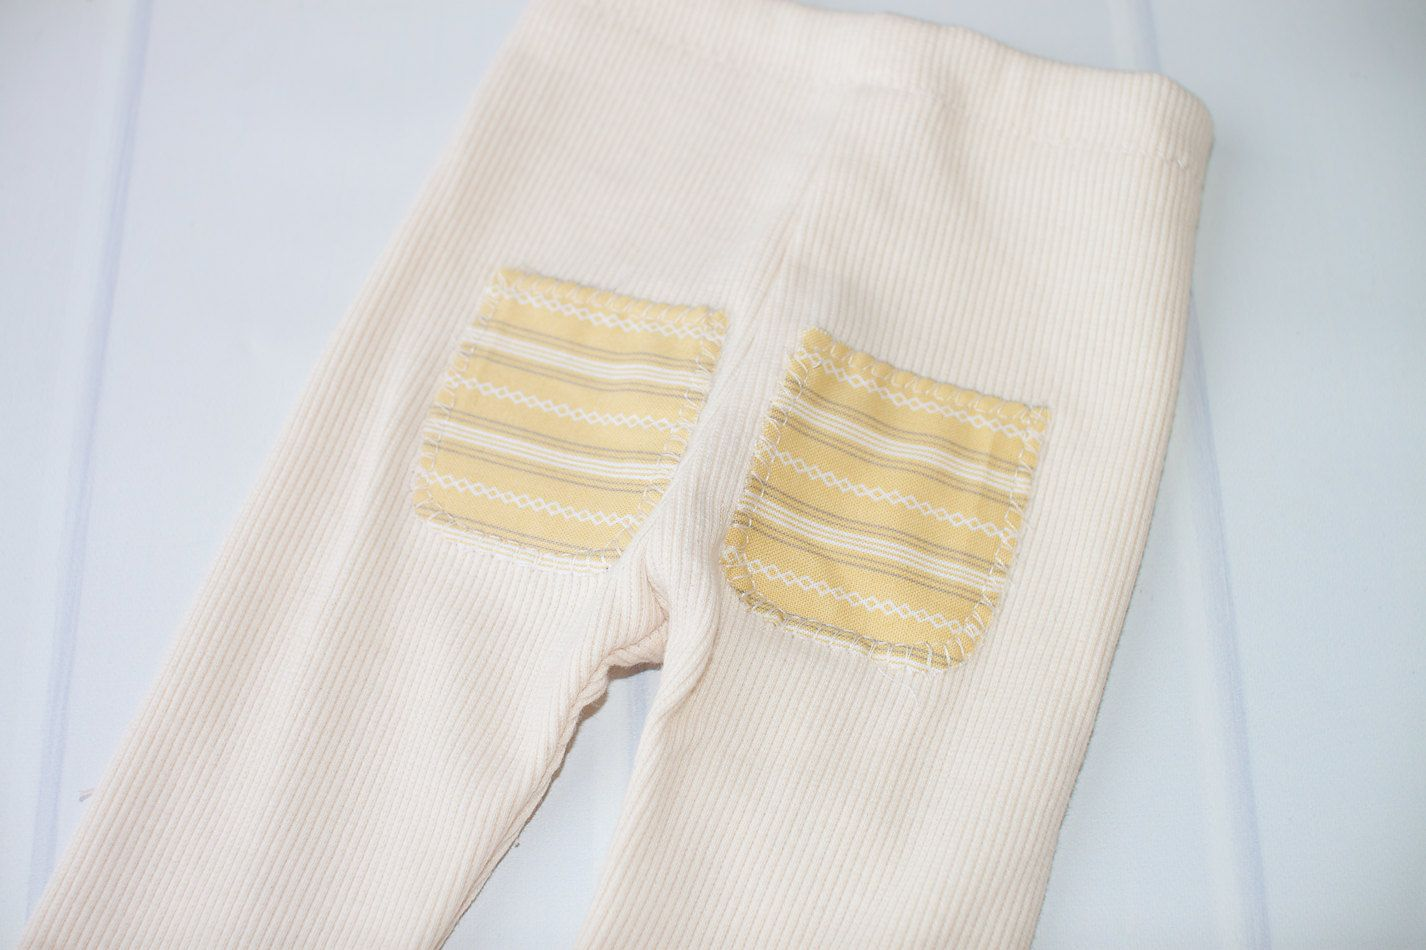 Preston - newborn pants in cream with celery green, cream and grey pockets (RTS) by SoTweetDesigns on Etsy